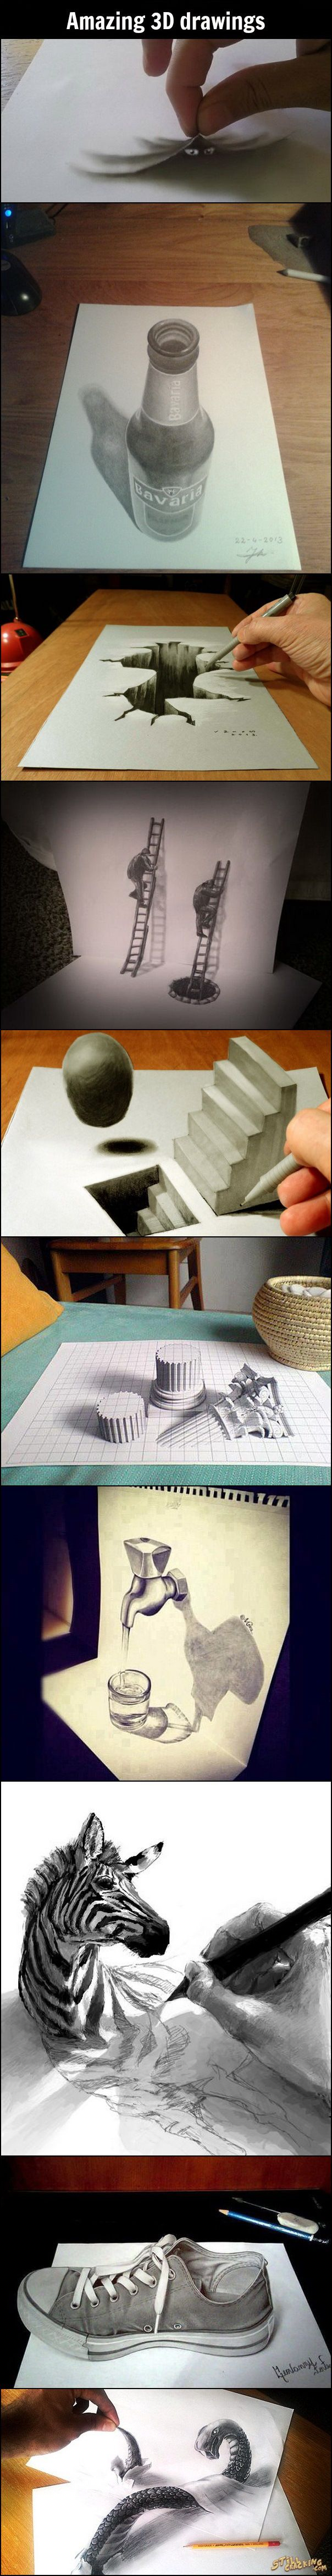 Drawn 3d art really And Pinterest on Illusions Find